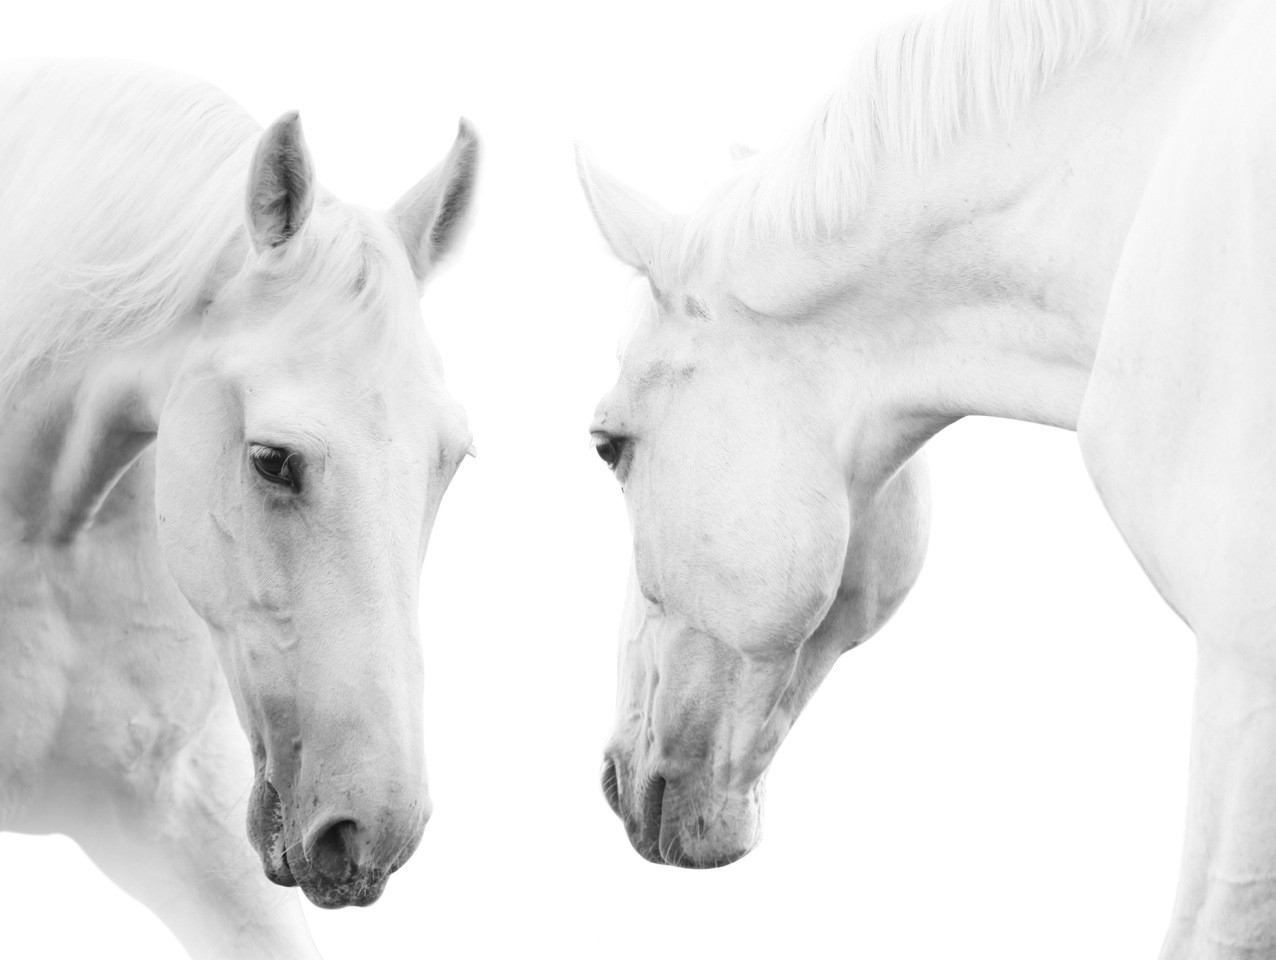 Sku alam1222 white horse pair artwork is also sometimes listed under the following manufacturer numbers bz25 horses pair